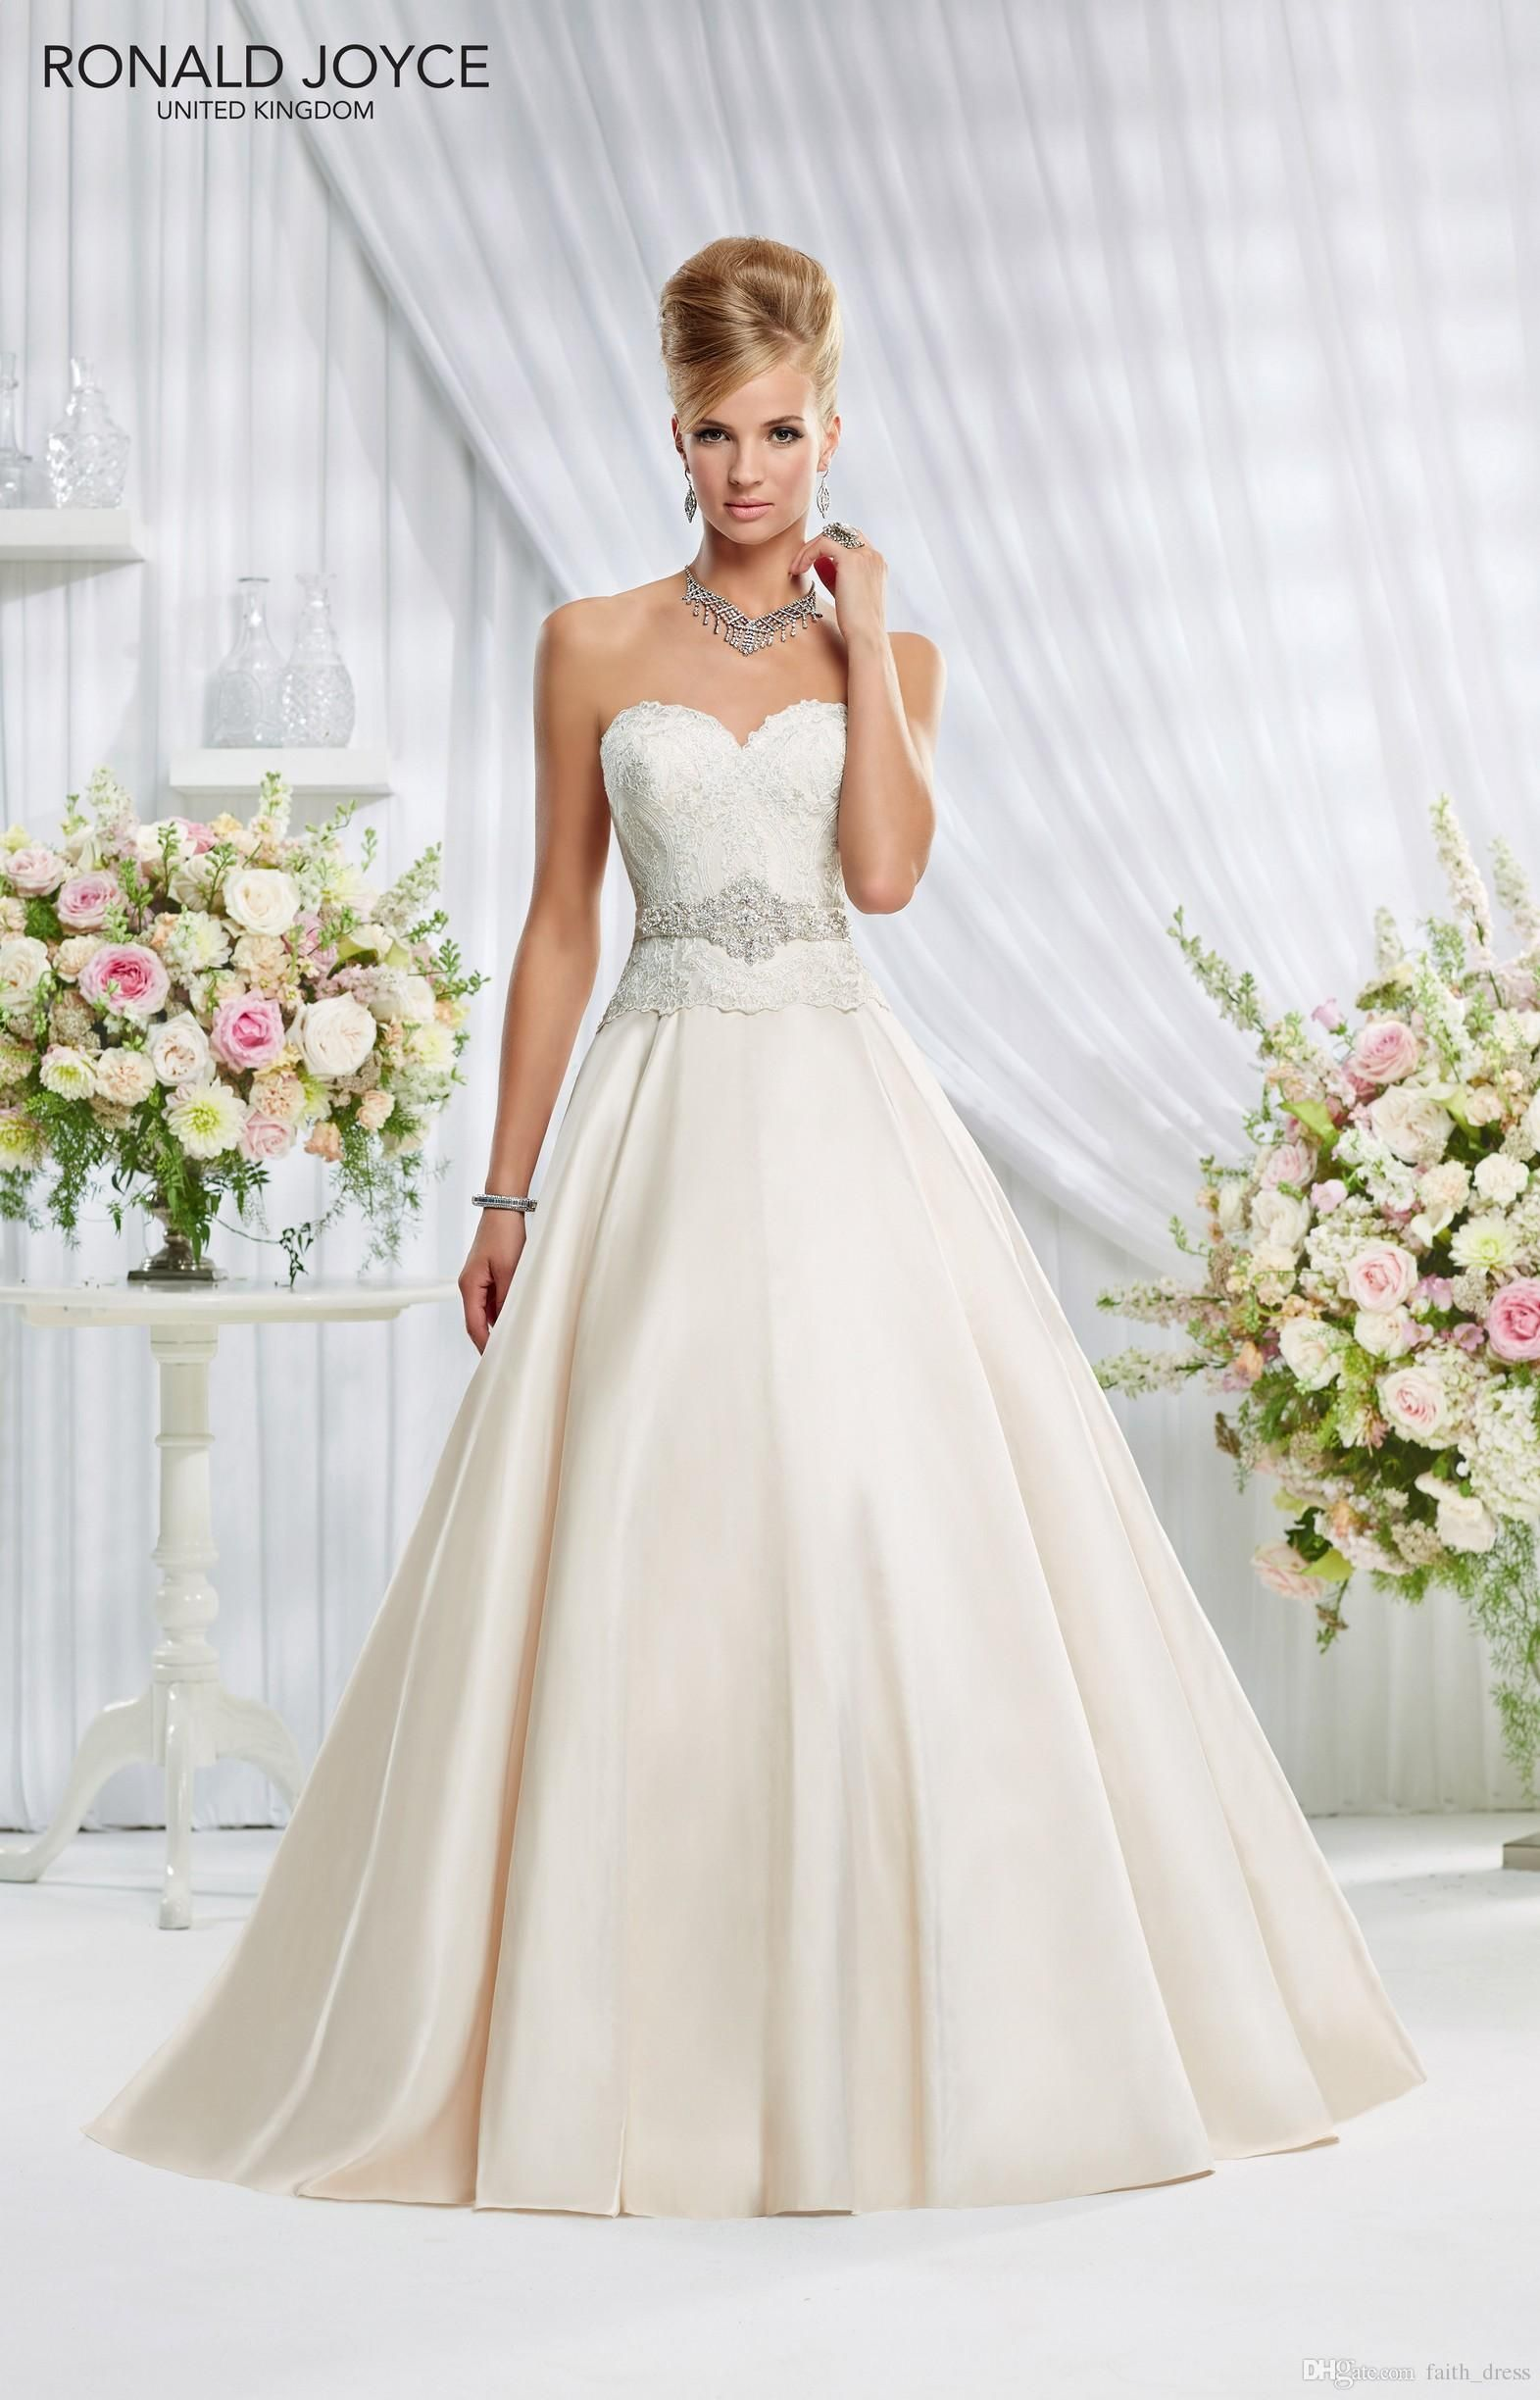 Wholesale ronald joyce wedding dresses a line sweetheart backless wholesale ronald joyce wedding dresses a line sweetheart backless sleeveless floor length crystal belt bridal wedding ombrellifo Image collections